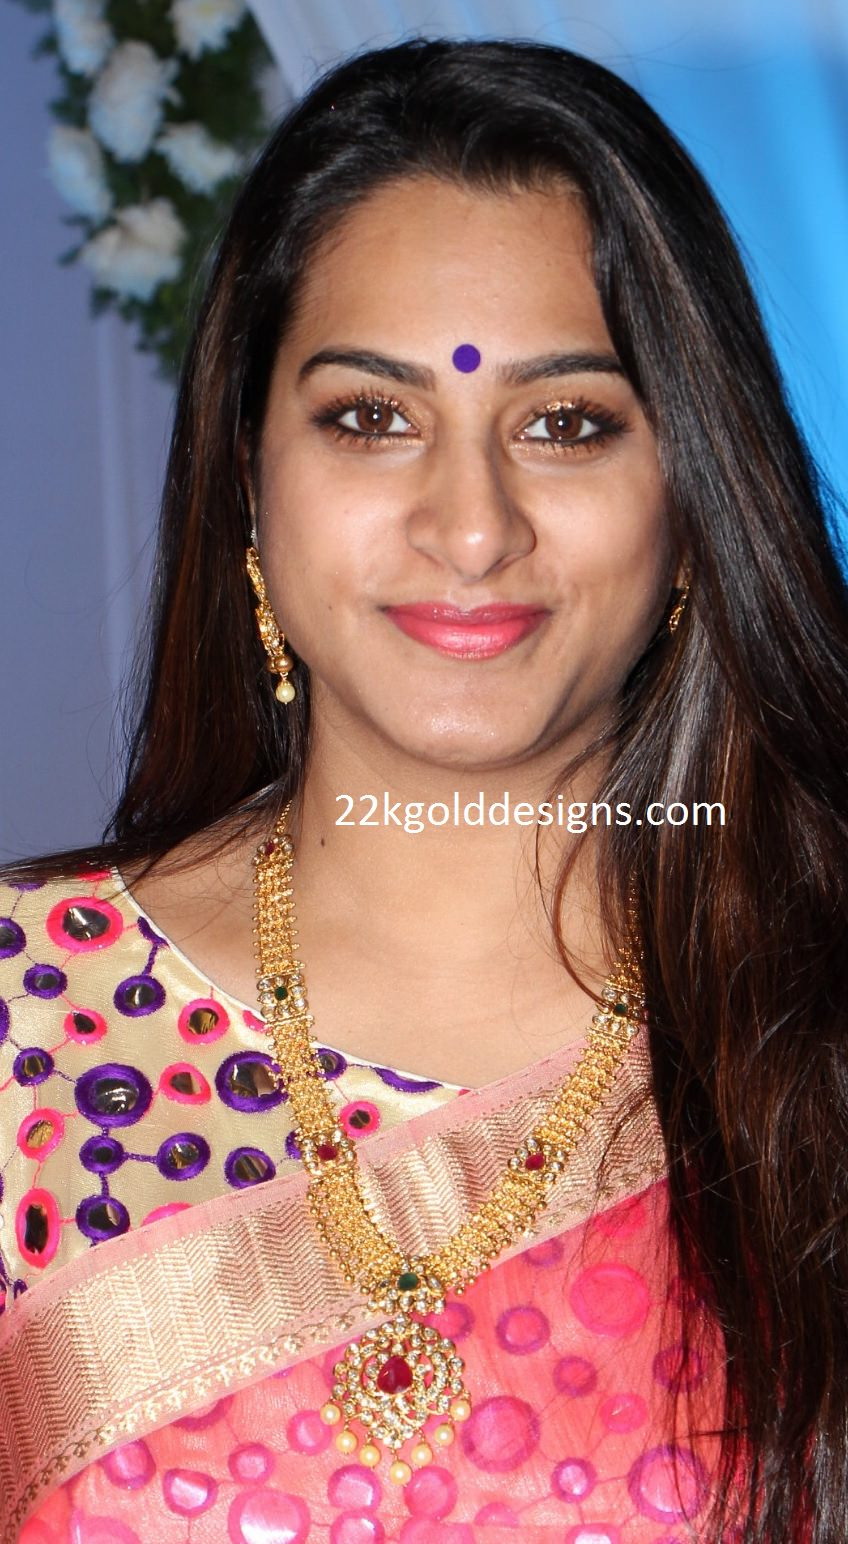 Surekha Vani in Pachi Gold Jewellery